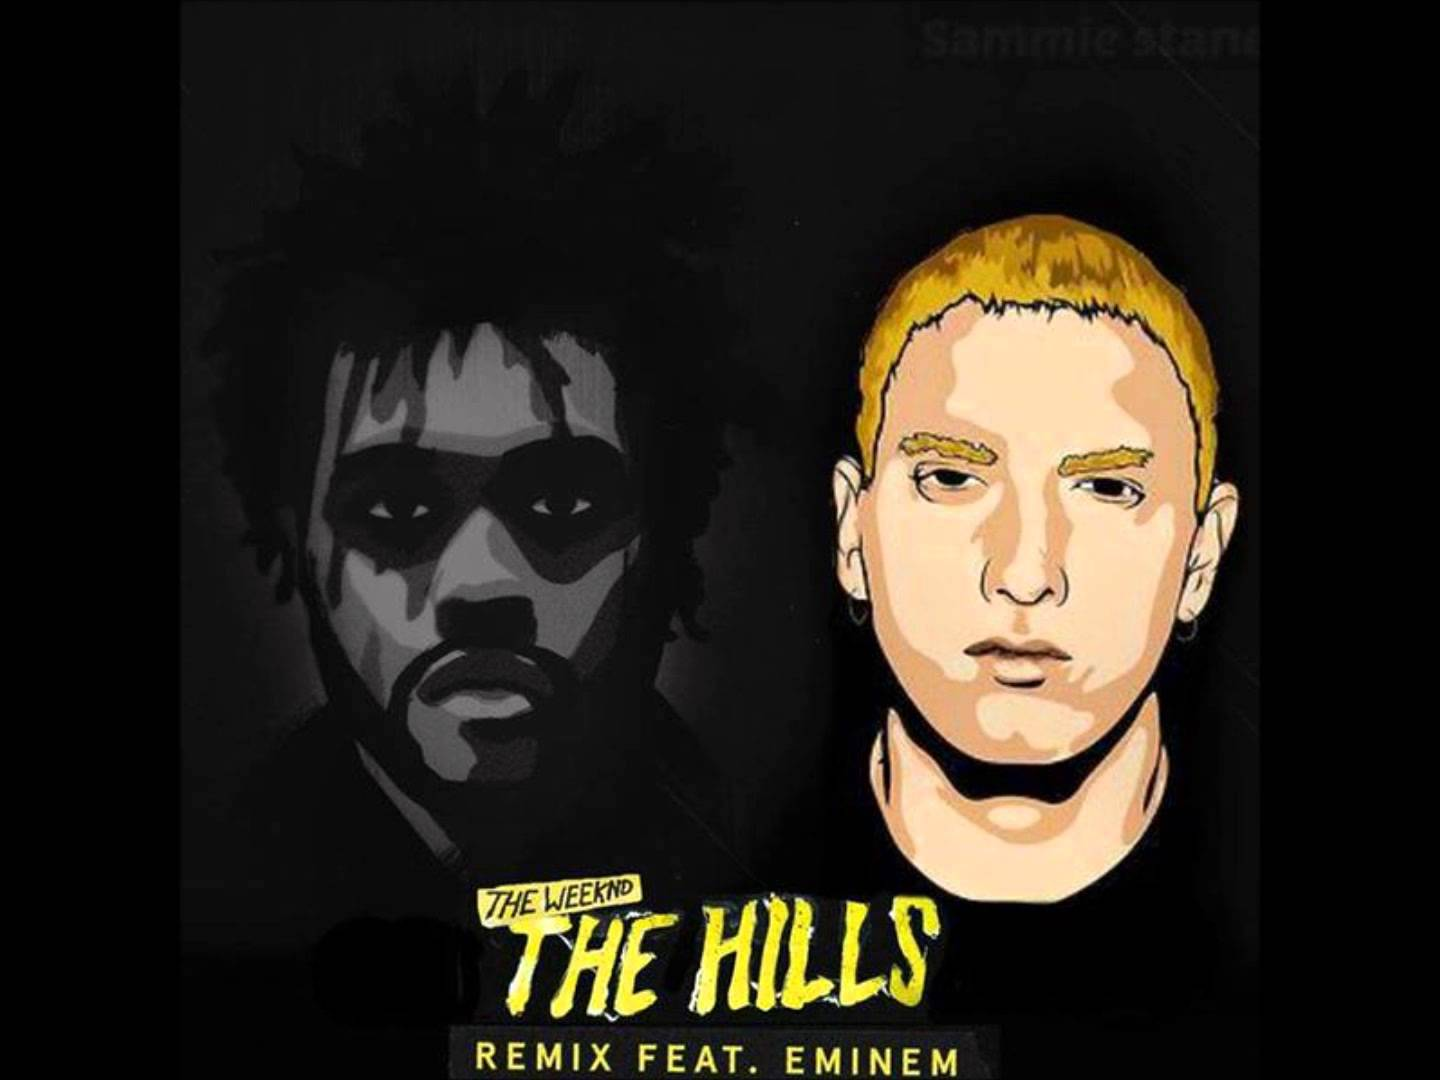 the hills eminem, the weeknd eminem, the weeknd zane lowe